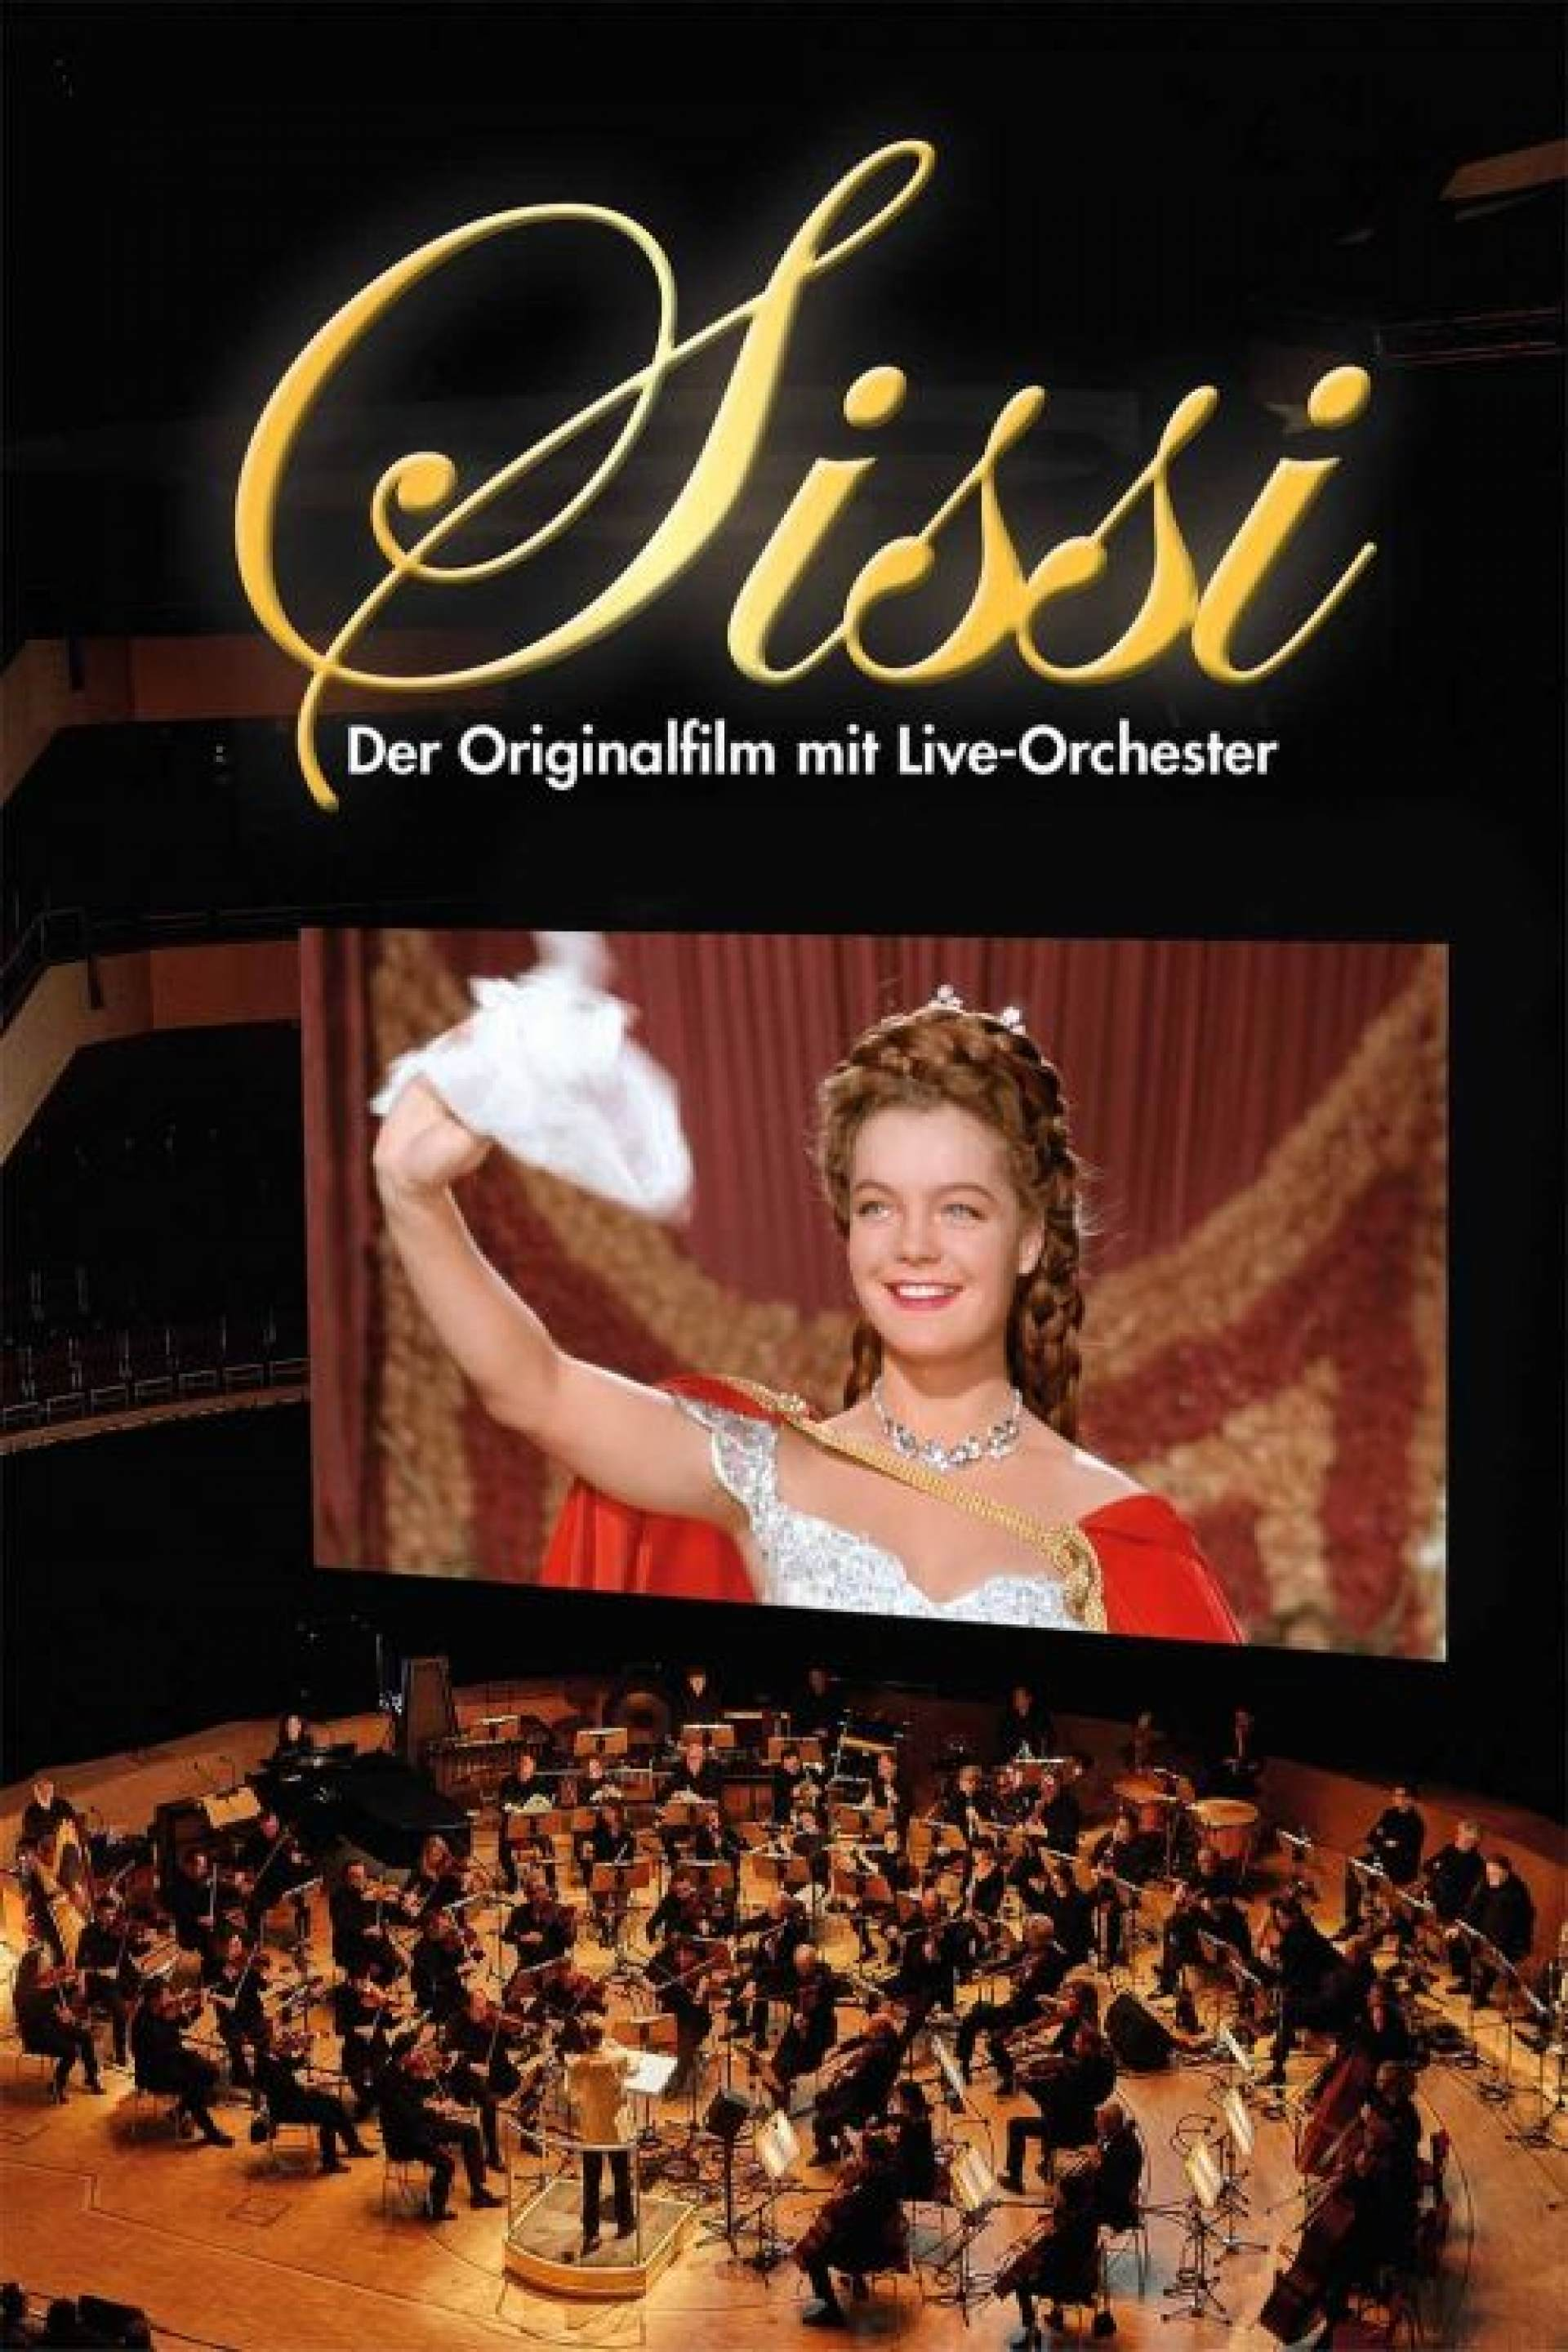 Sissi - The original film with live orchestra